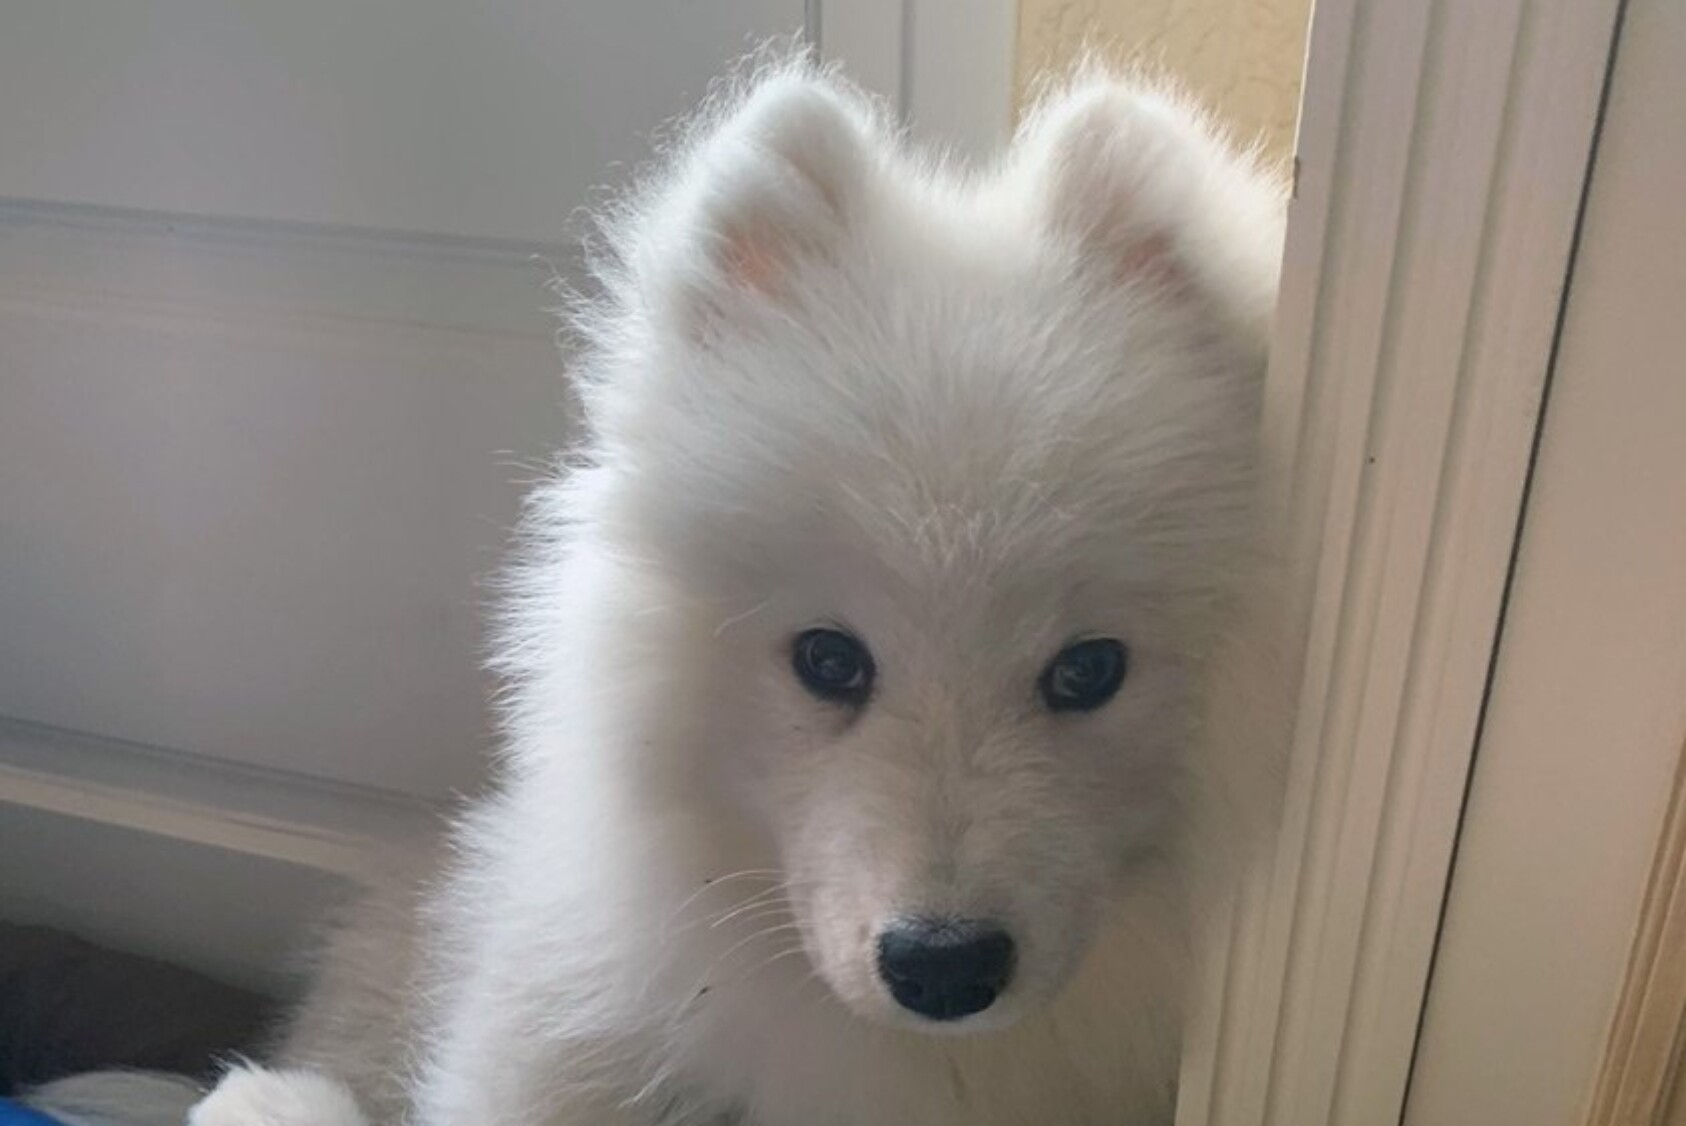 """""""We adopted a three-month-old puppy a couple of weeks ago, a Samoyed called River. He is adorable and has already positively changed our family of four! River brings his company to our family, as some of us are otherwise alone in the house and unable to see our friends. He is always joyful and happy to be with us, and he follows us everywhere. He is a great topic of family conversation and an occasion to solve problems together, regarding his education, feeding, activities, and health. It gives my teenage boys a sense of responsibility and maturity to be able to care for him."""" —Laurent F. Paty MBA '95, Mouans-Sartoux, France"""